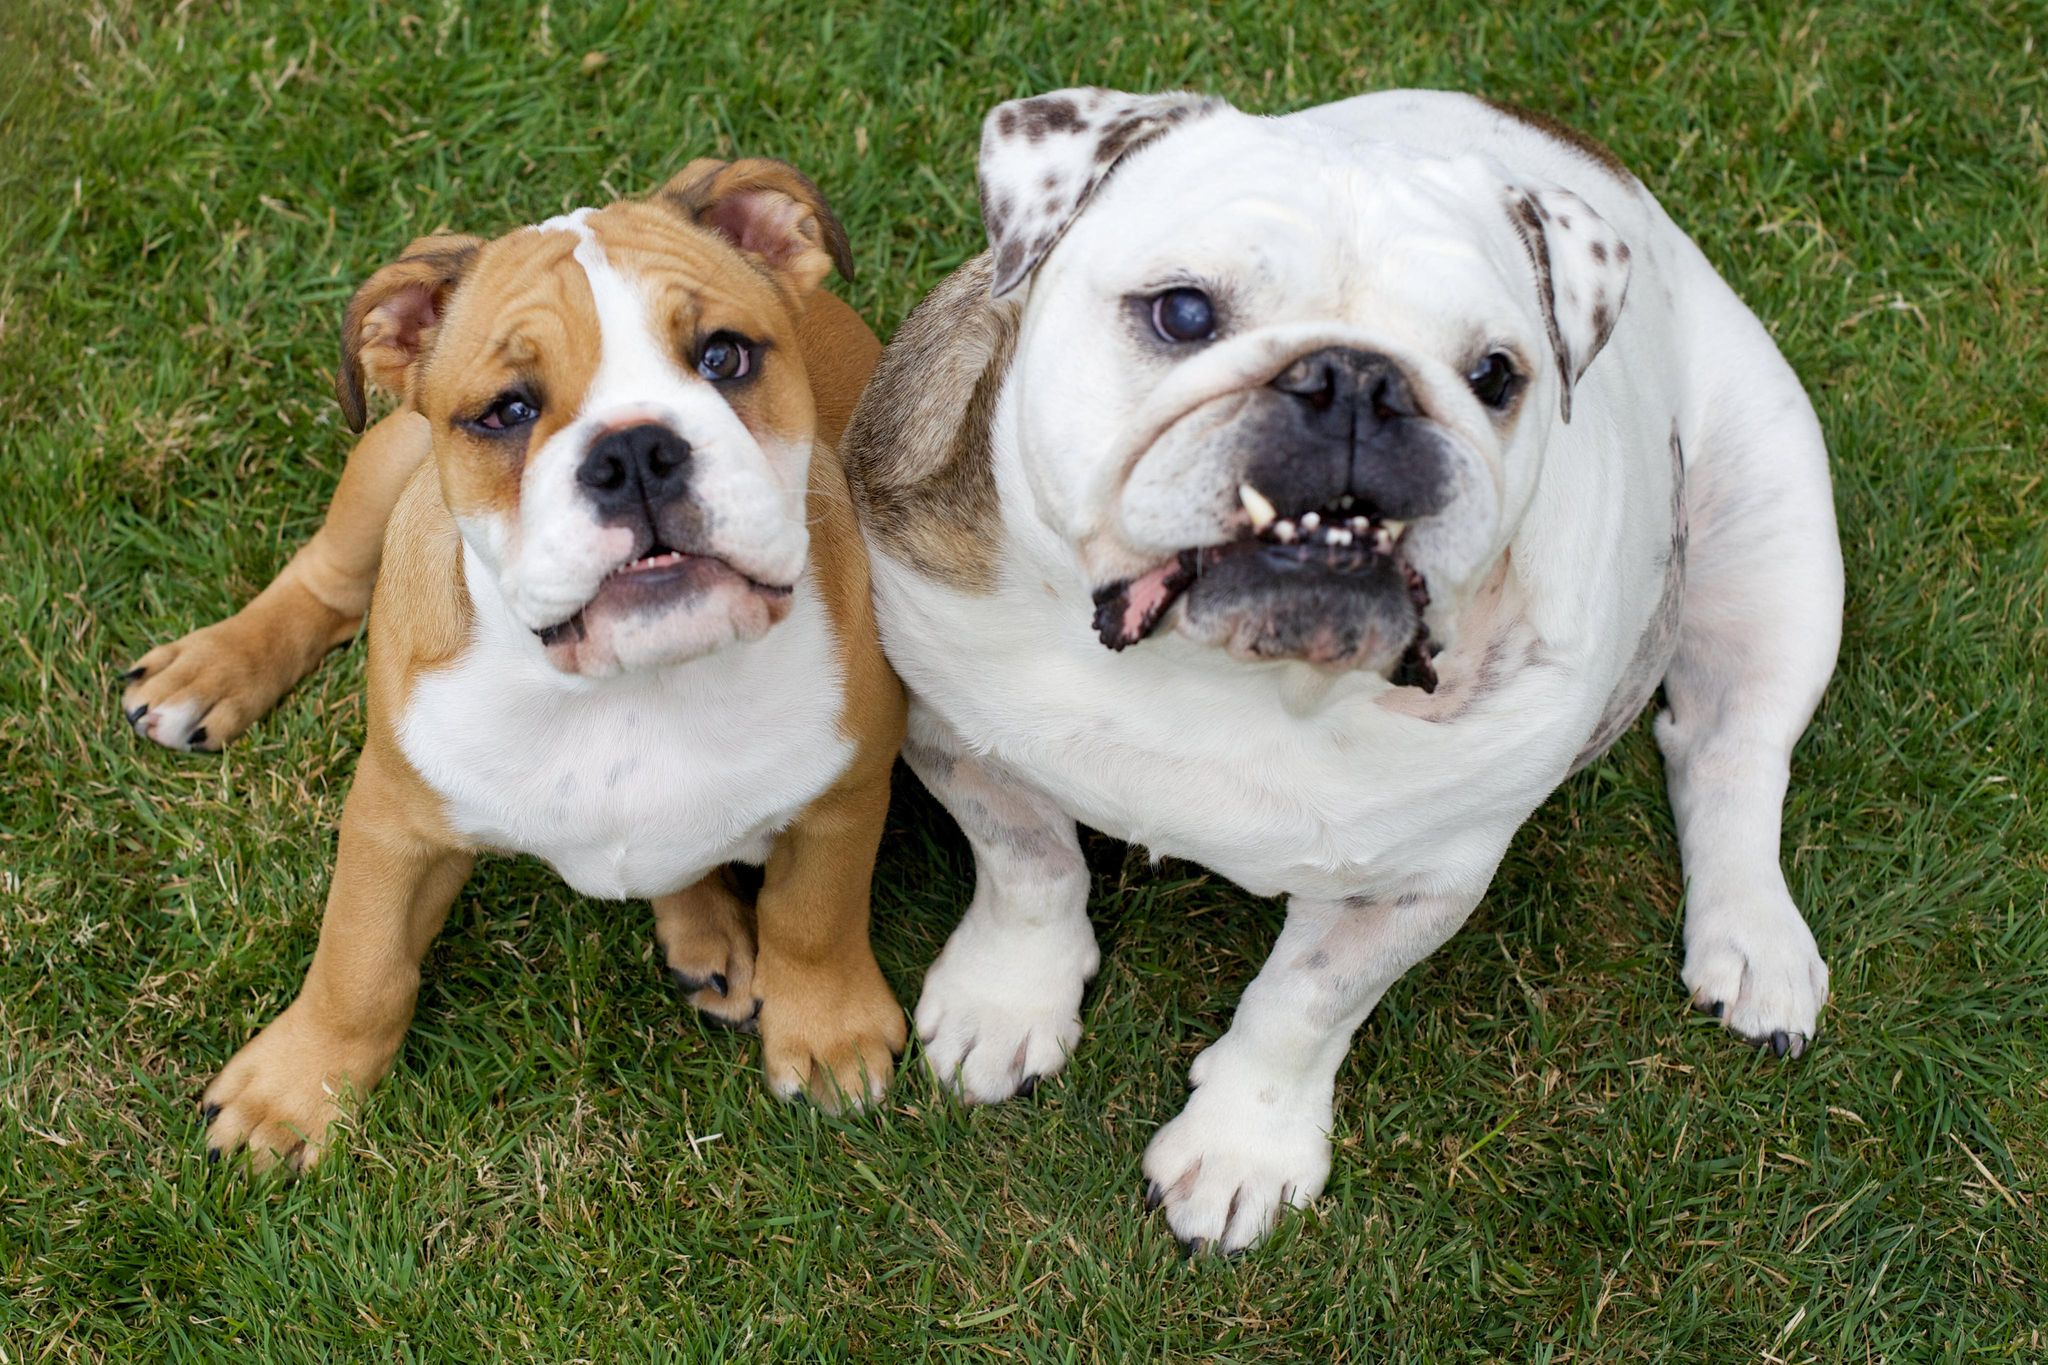 Two dogs sat on grass